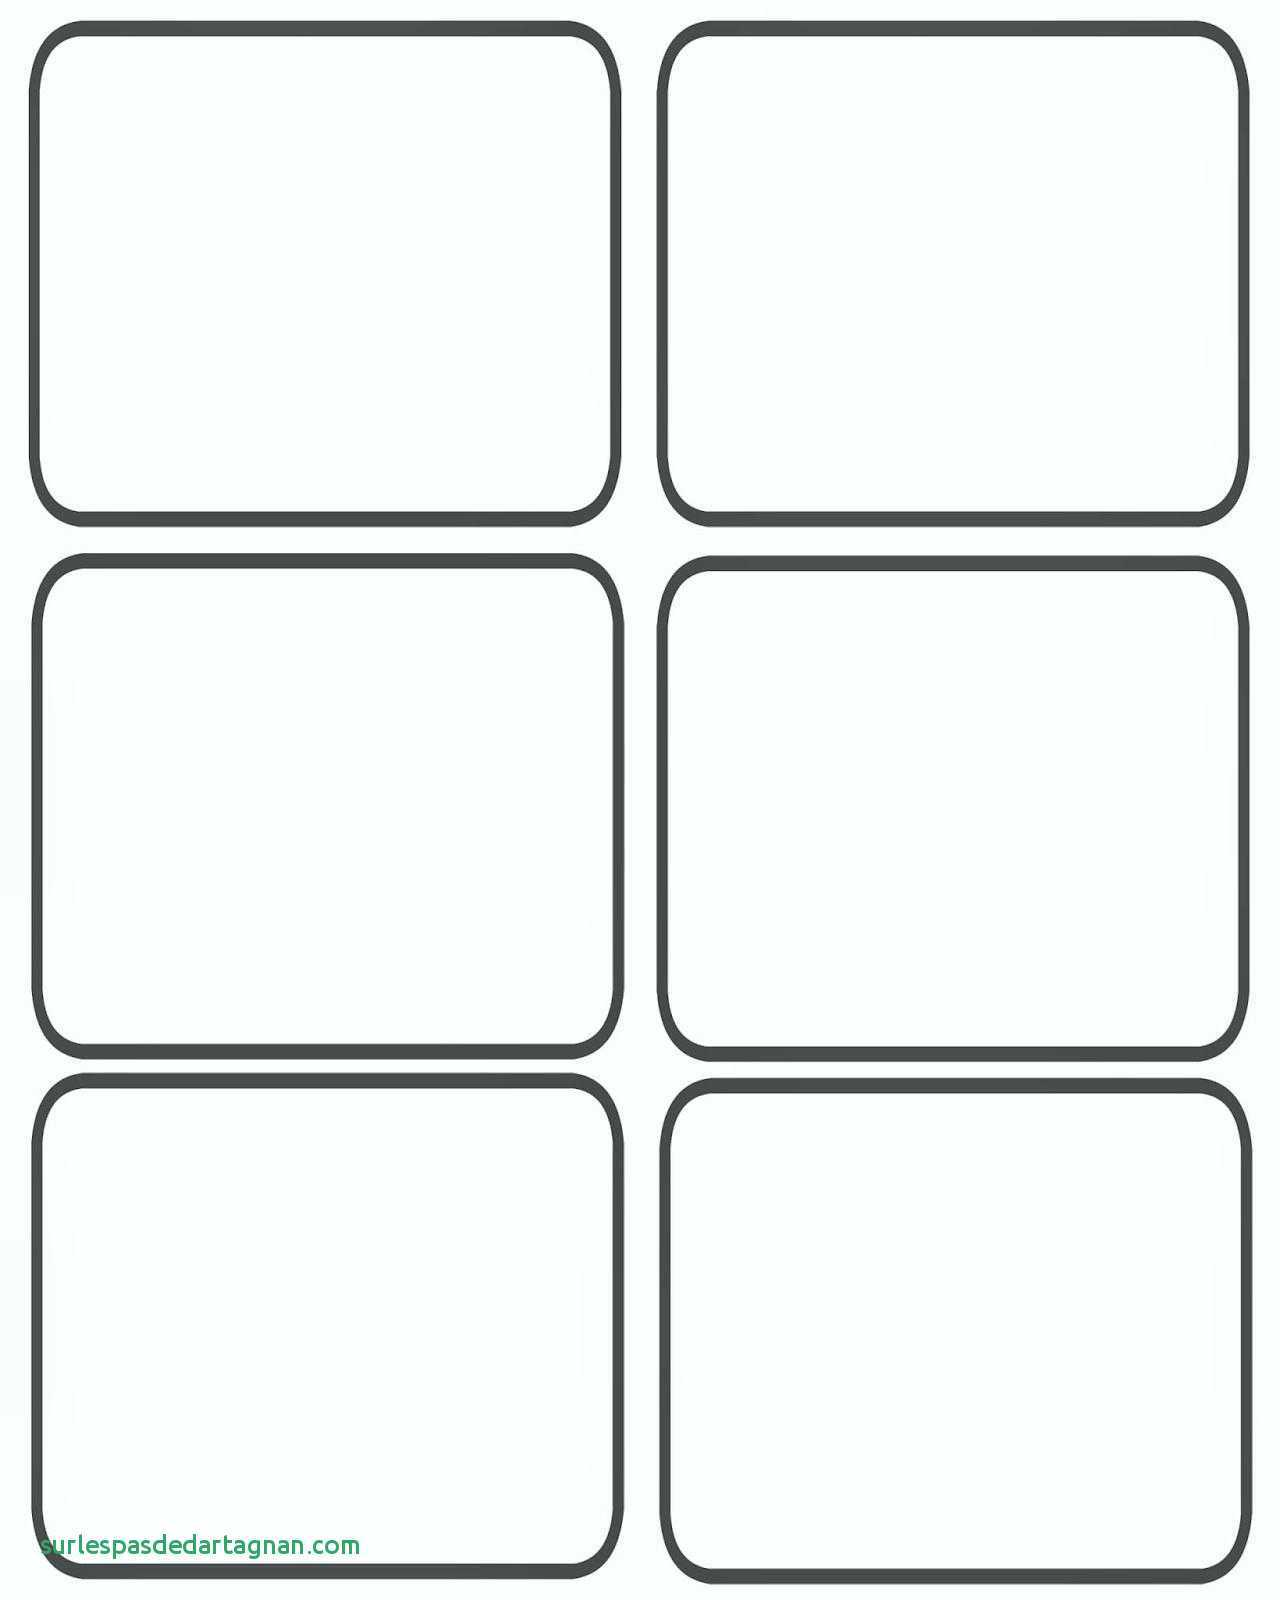 Playing Card Templates Free | C Punkt With Regard To Free Printable Playing Cards Template